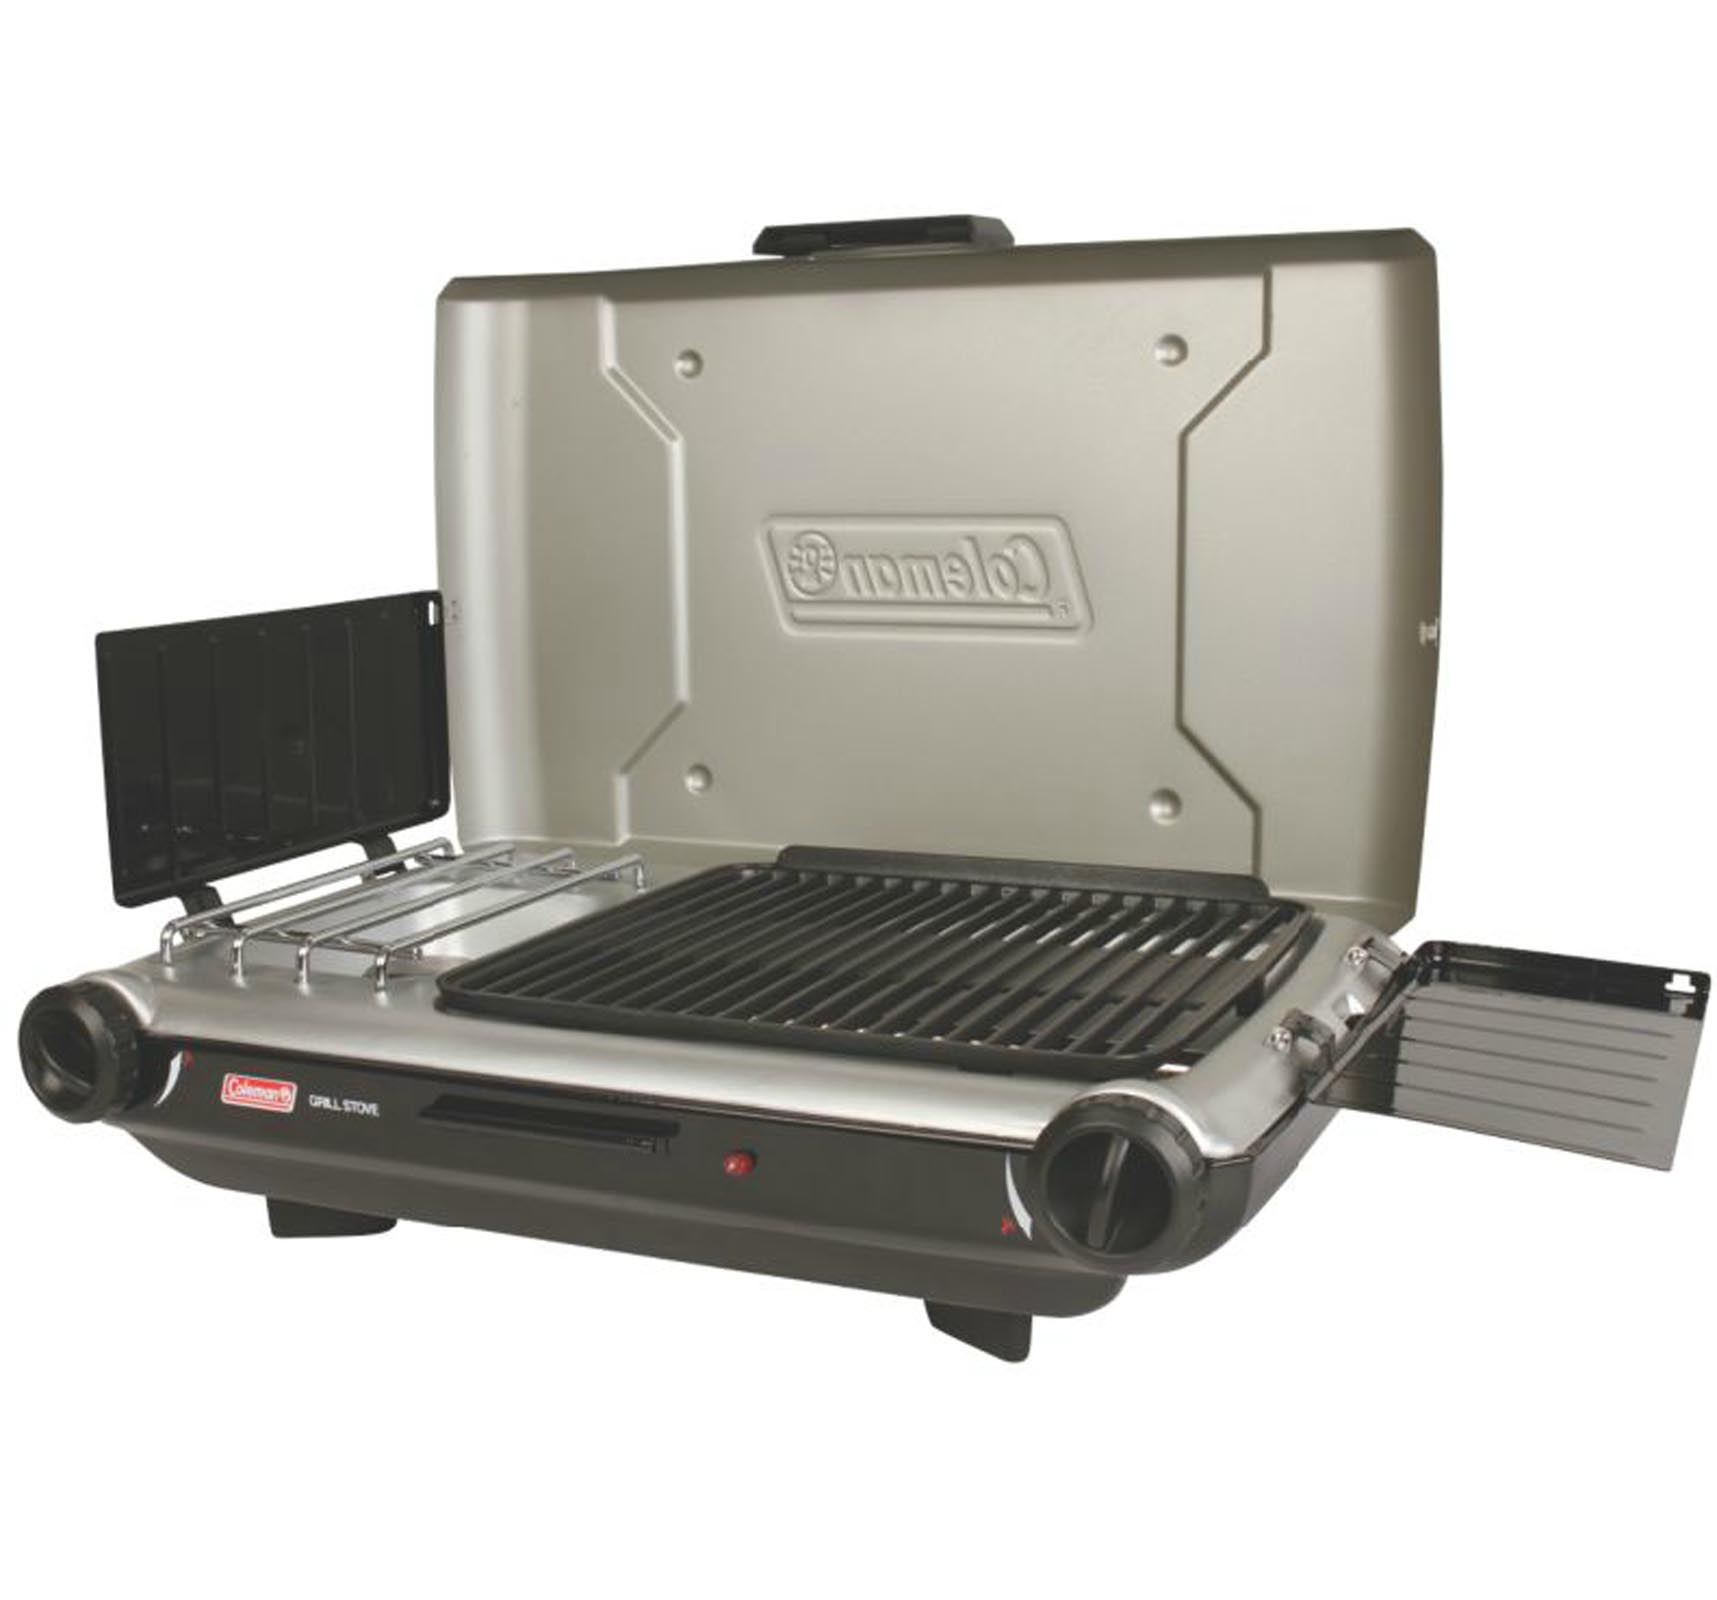 Coleman Portable Camping 2-Burner PerfectFlow Instastart Propane Grill Stove by